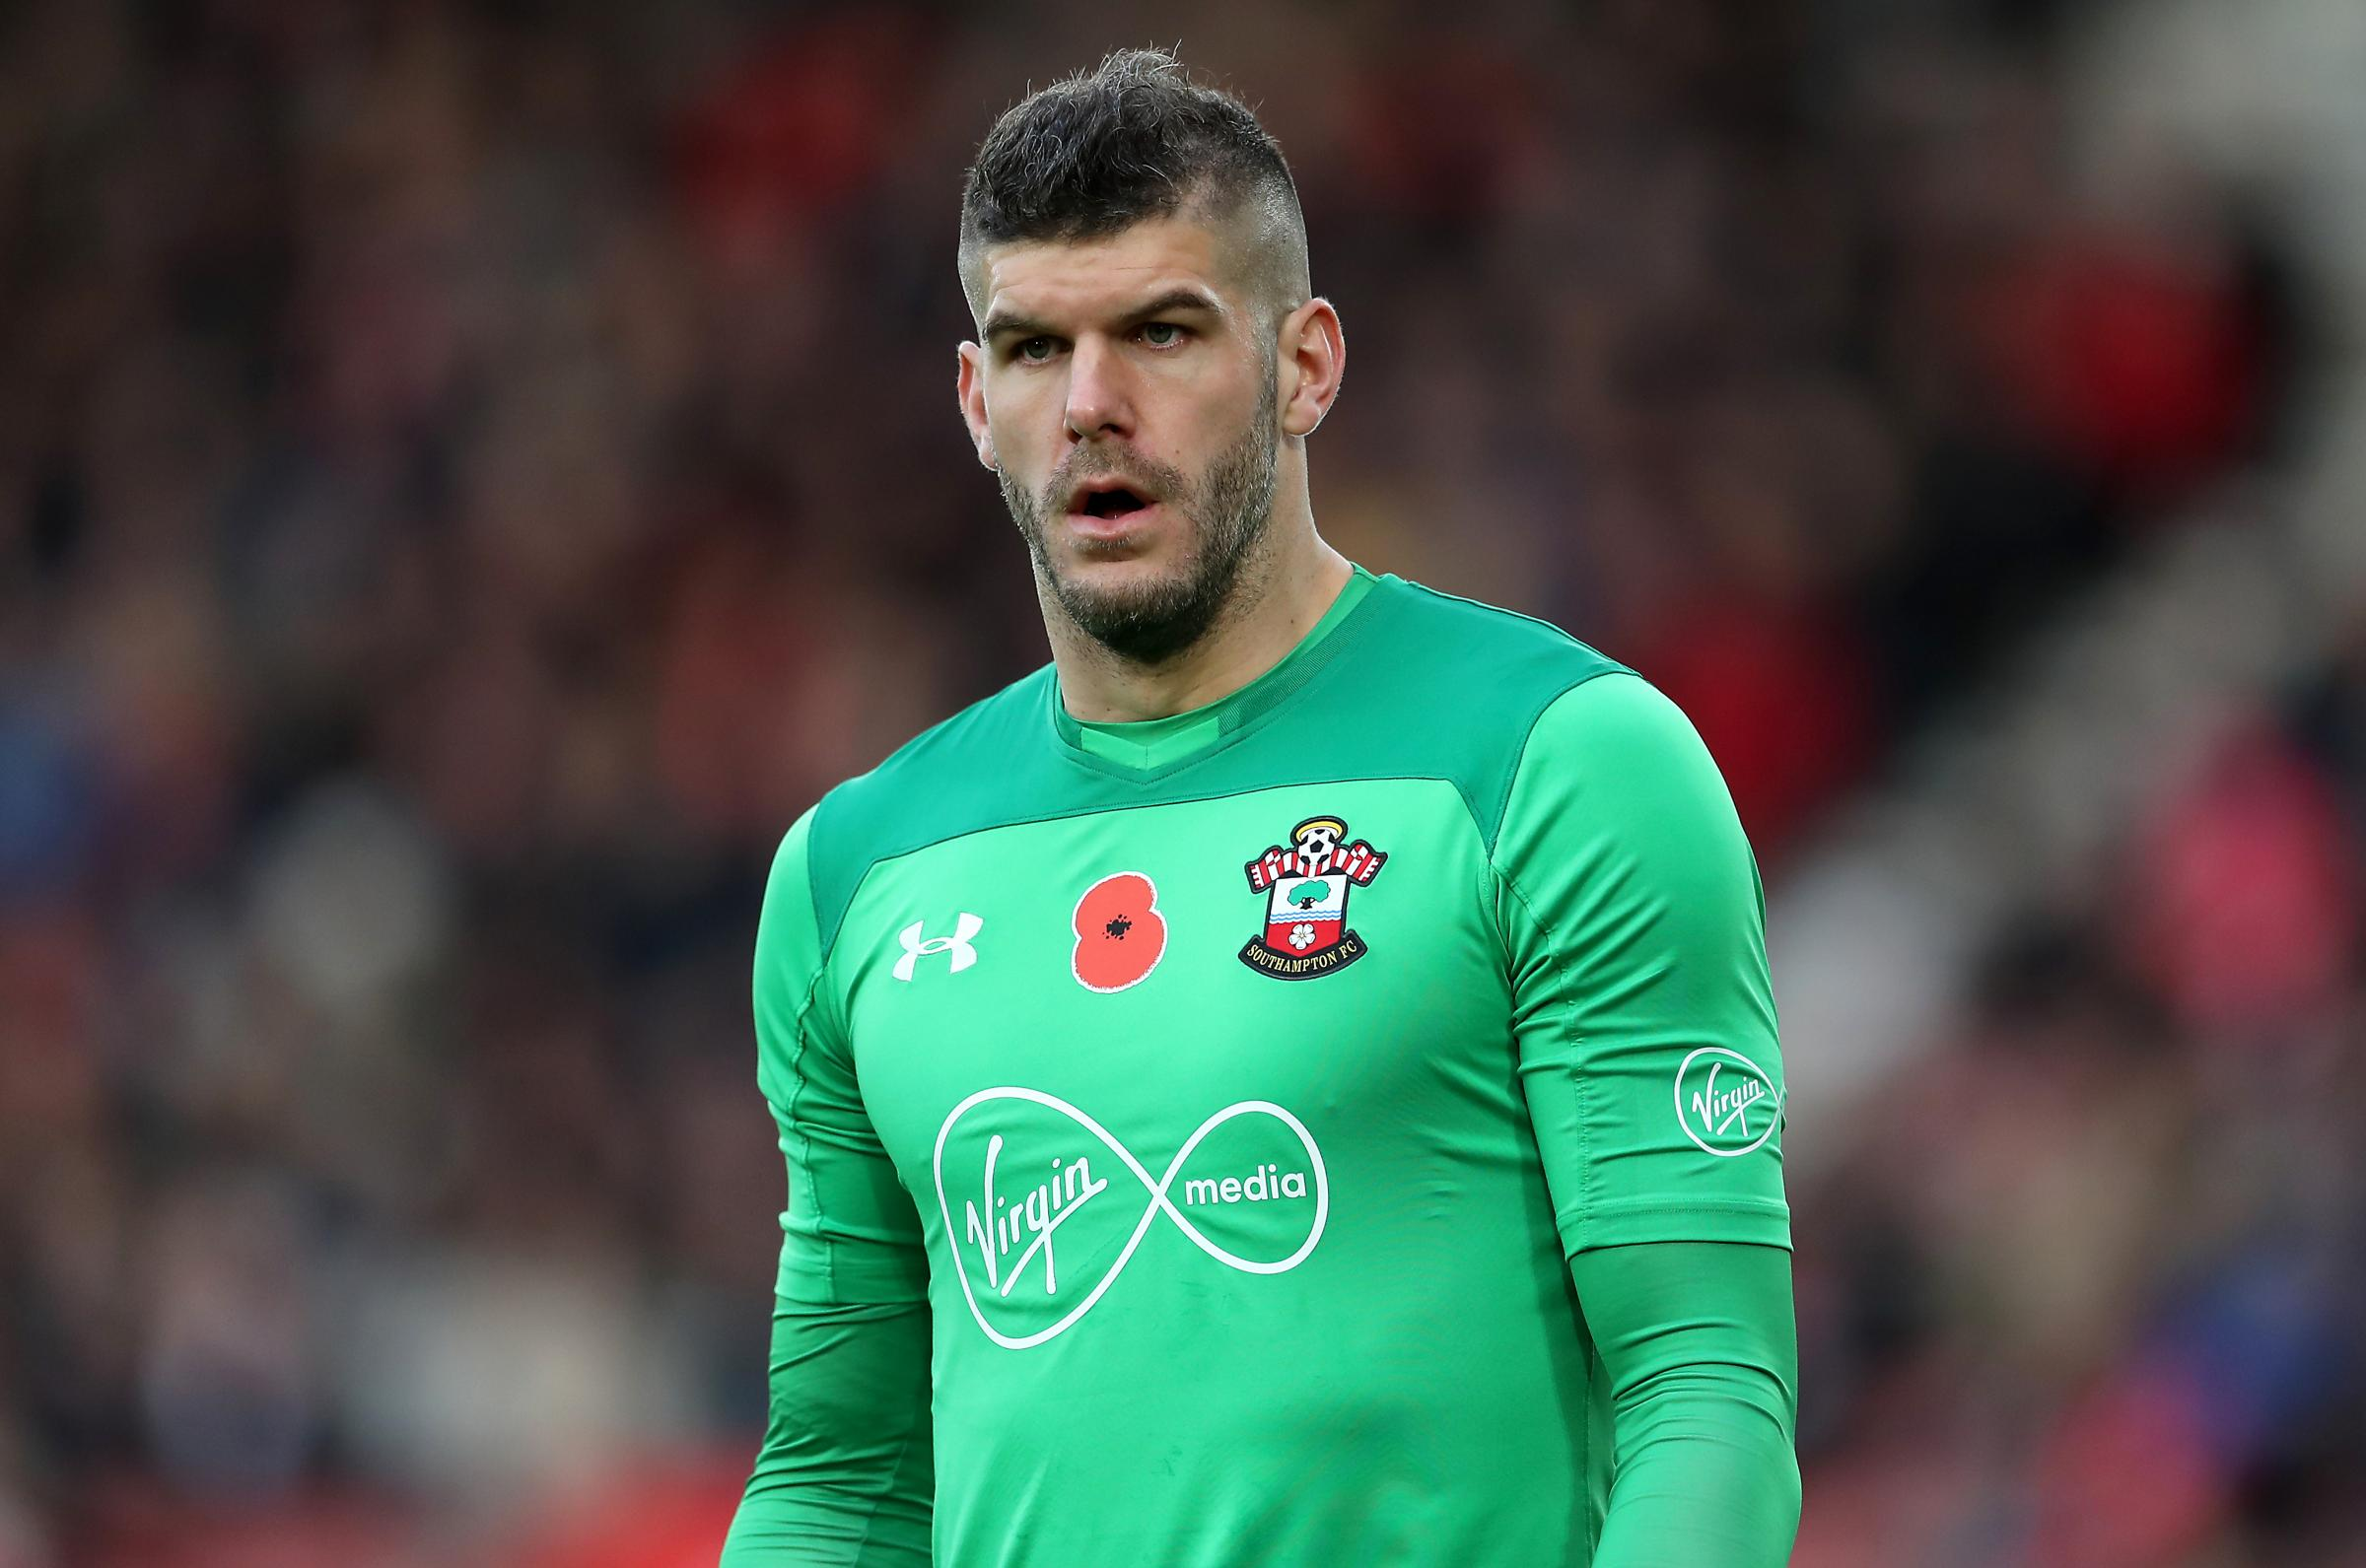 Fraser Forster's been handed the chance to impress Ralph Hasenhuttl